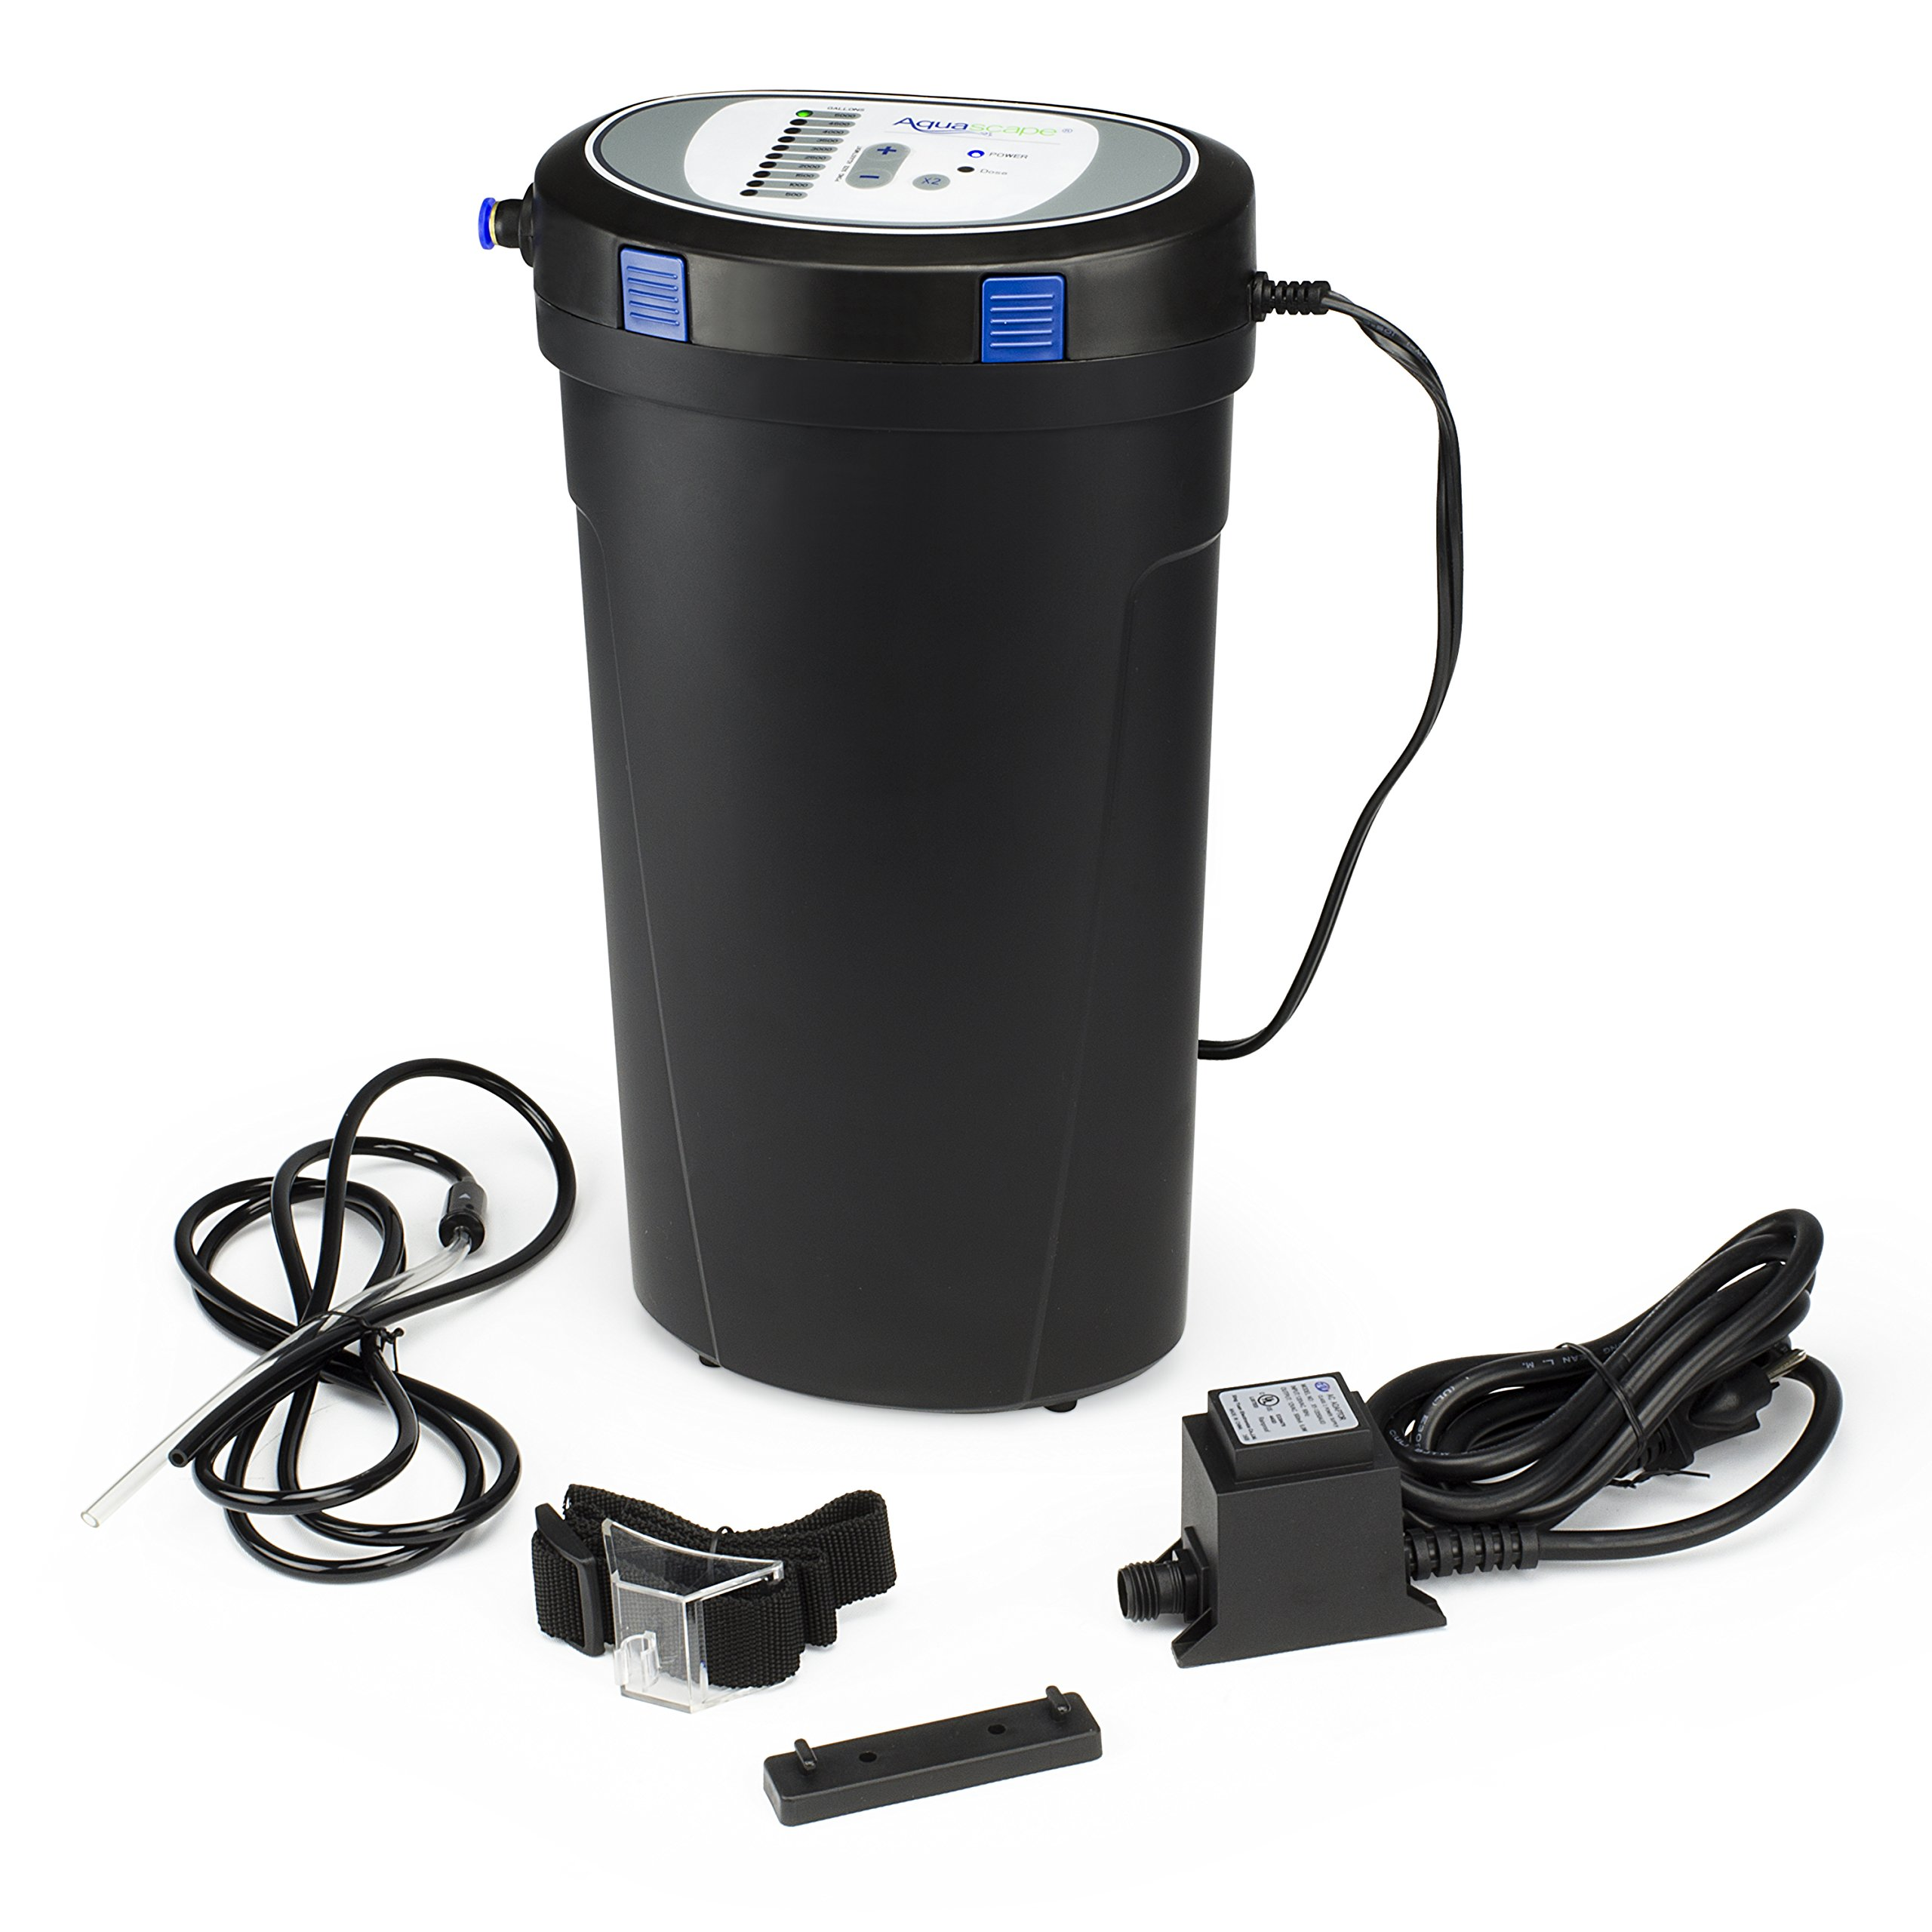 Aquascape 96030 Automatic Water Treatment Dosing System, Clear by Aquascape